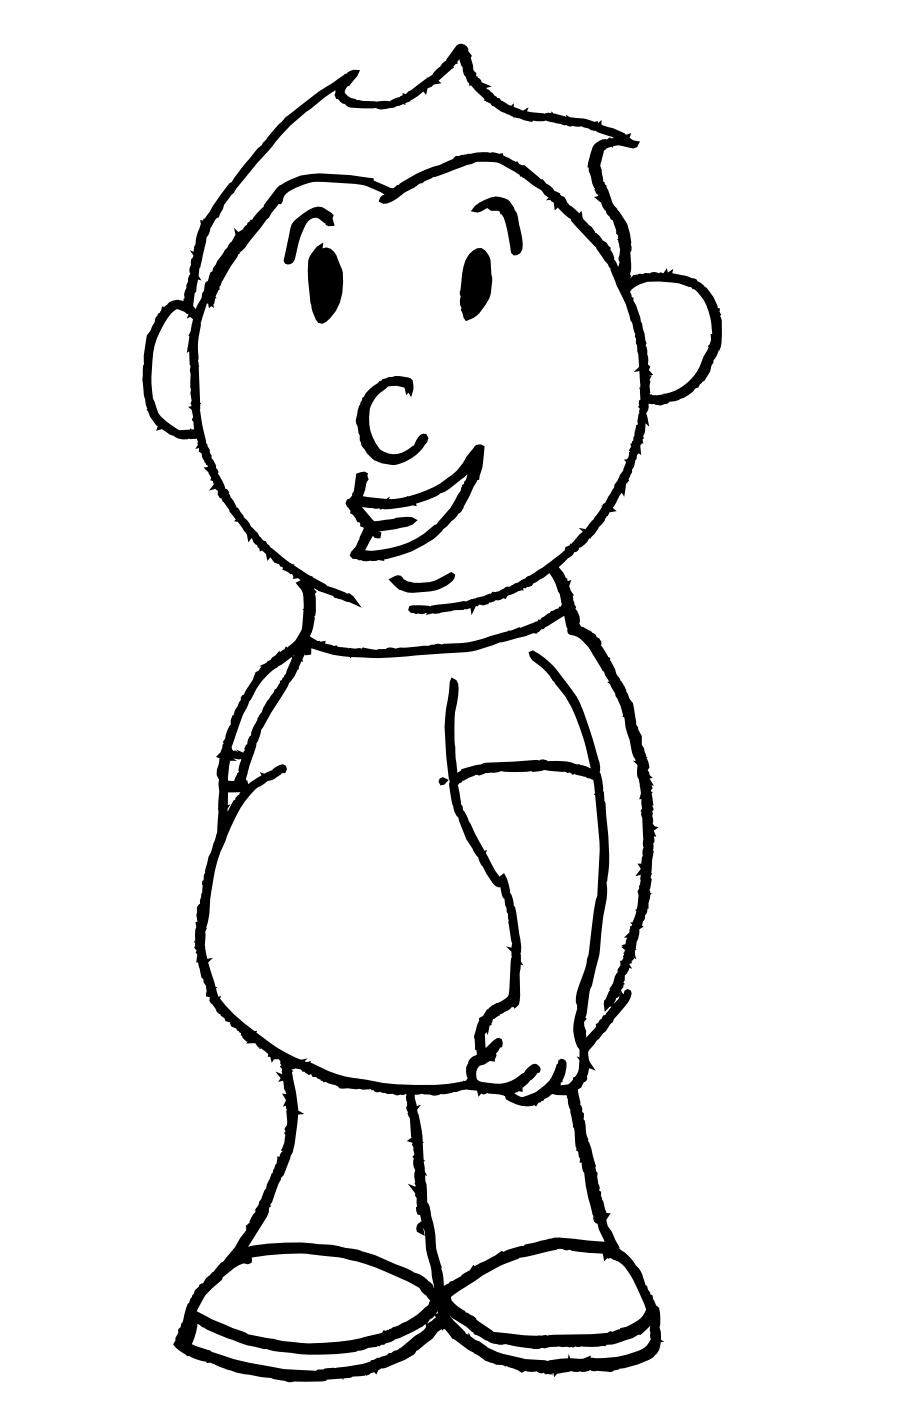 how to draw cartoon character learn to draw cartoons lesson 1 the comic head how character cartoon to draw